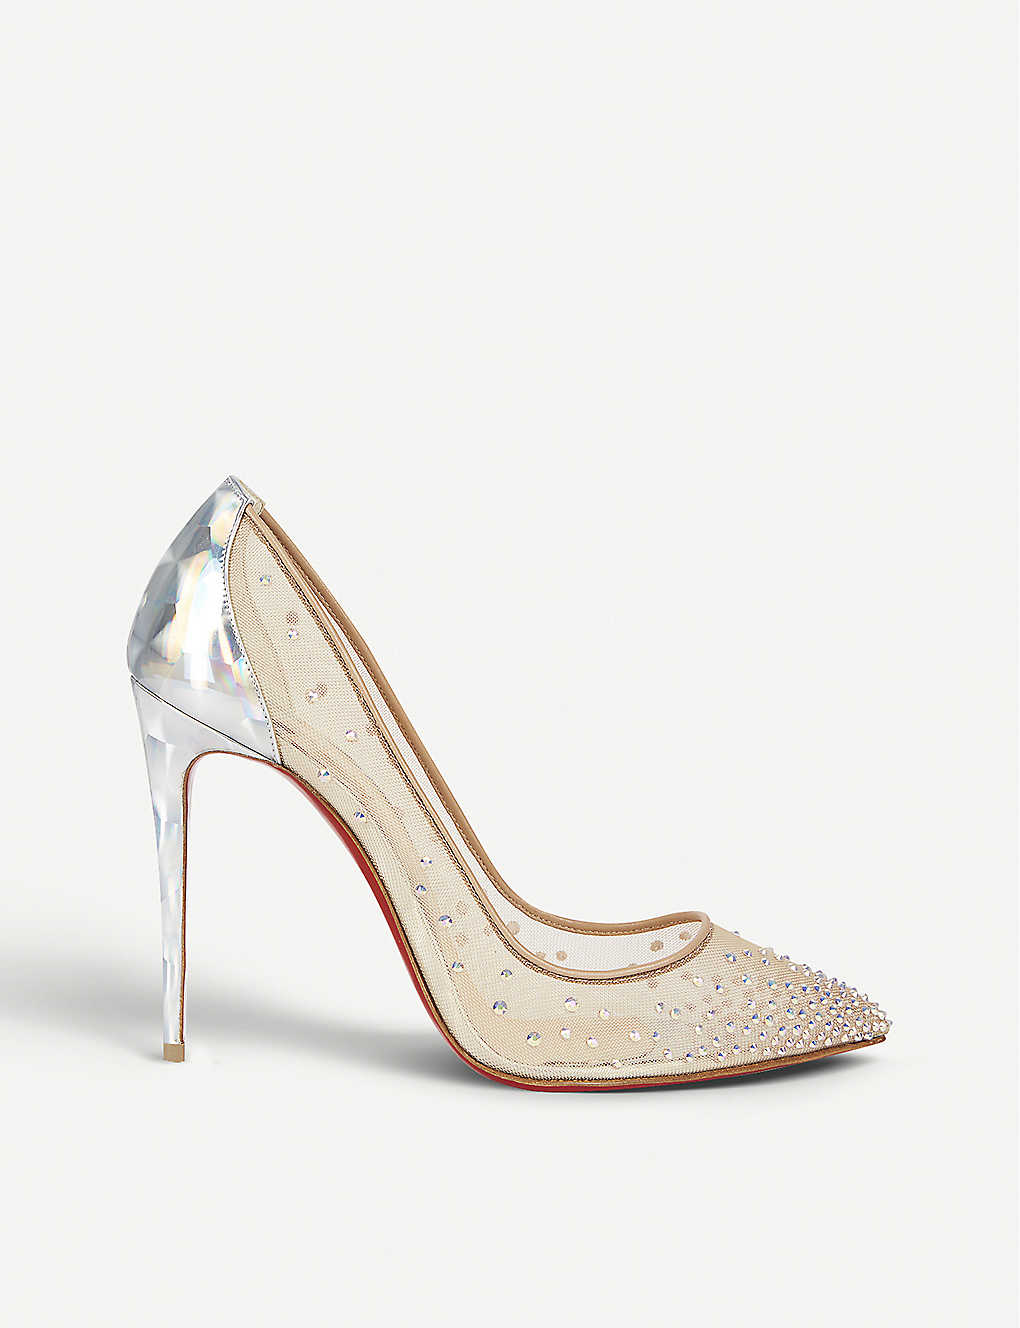 550929c0d2aa CHRISTIAN LOUBOUTIN - Follies strass 100 rete prisme version s ...